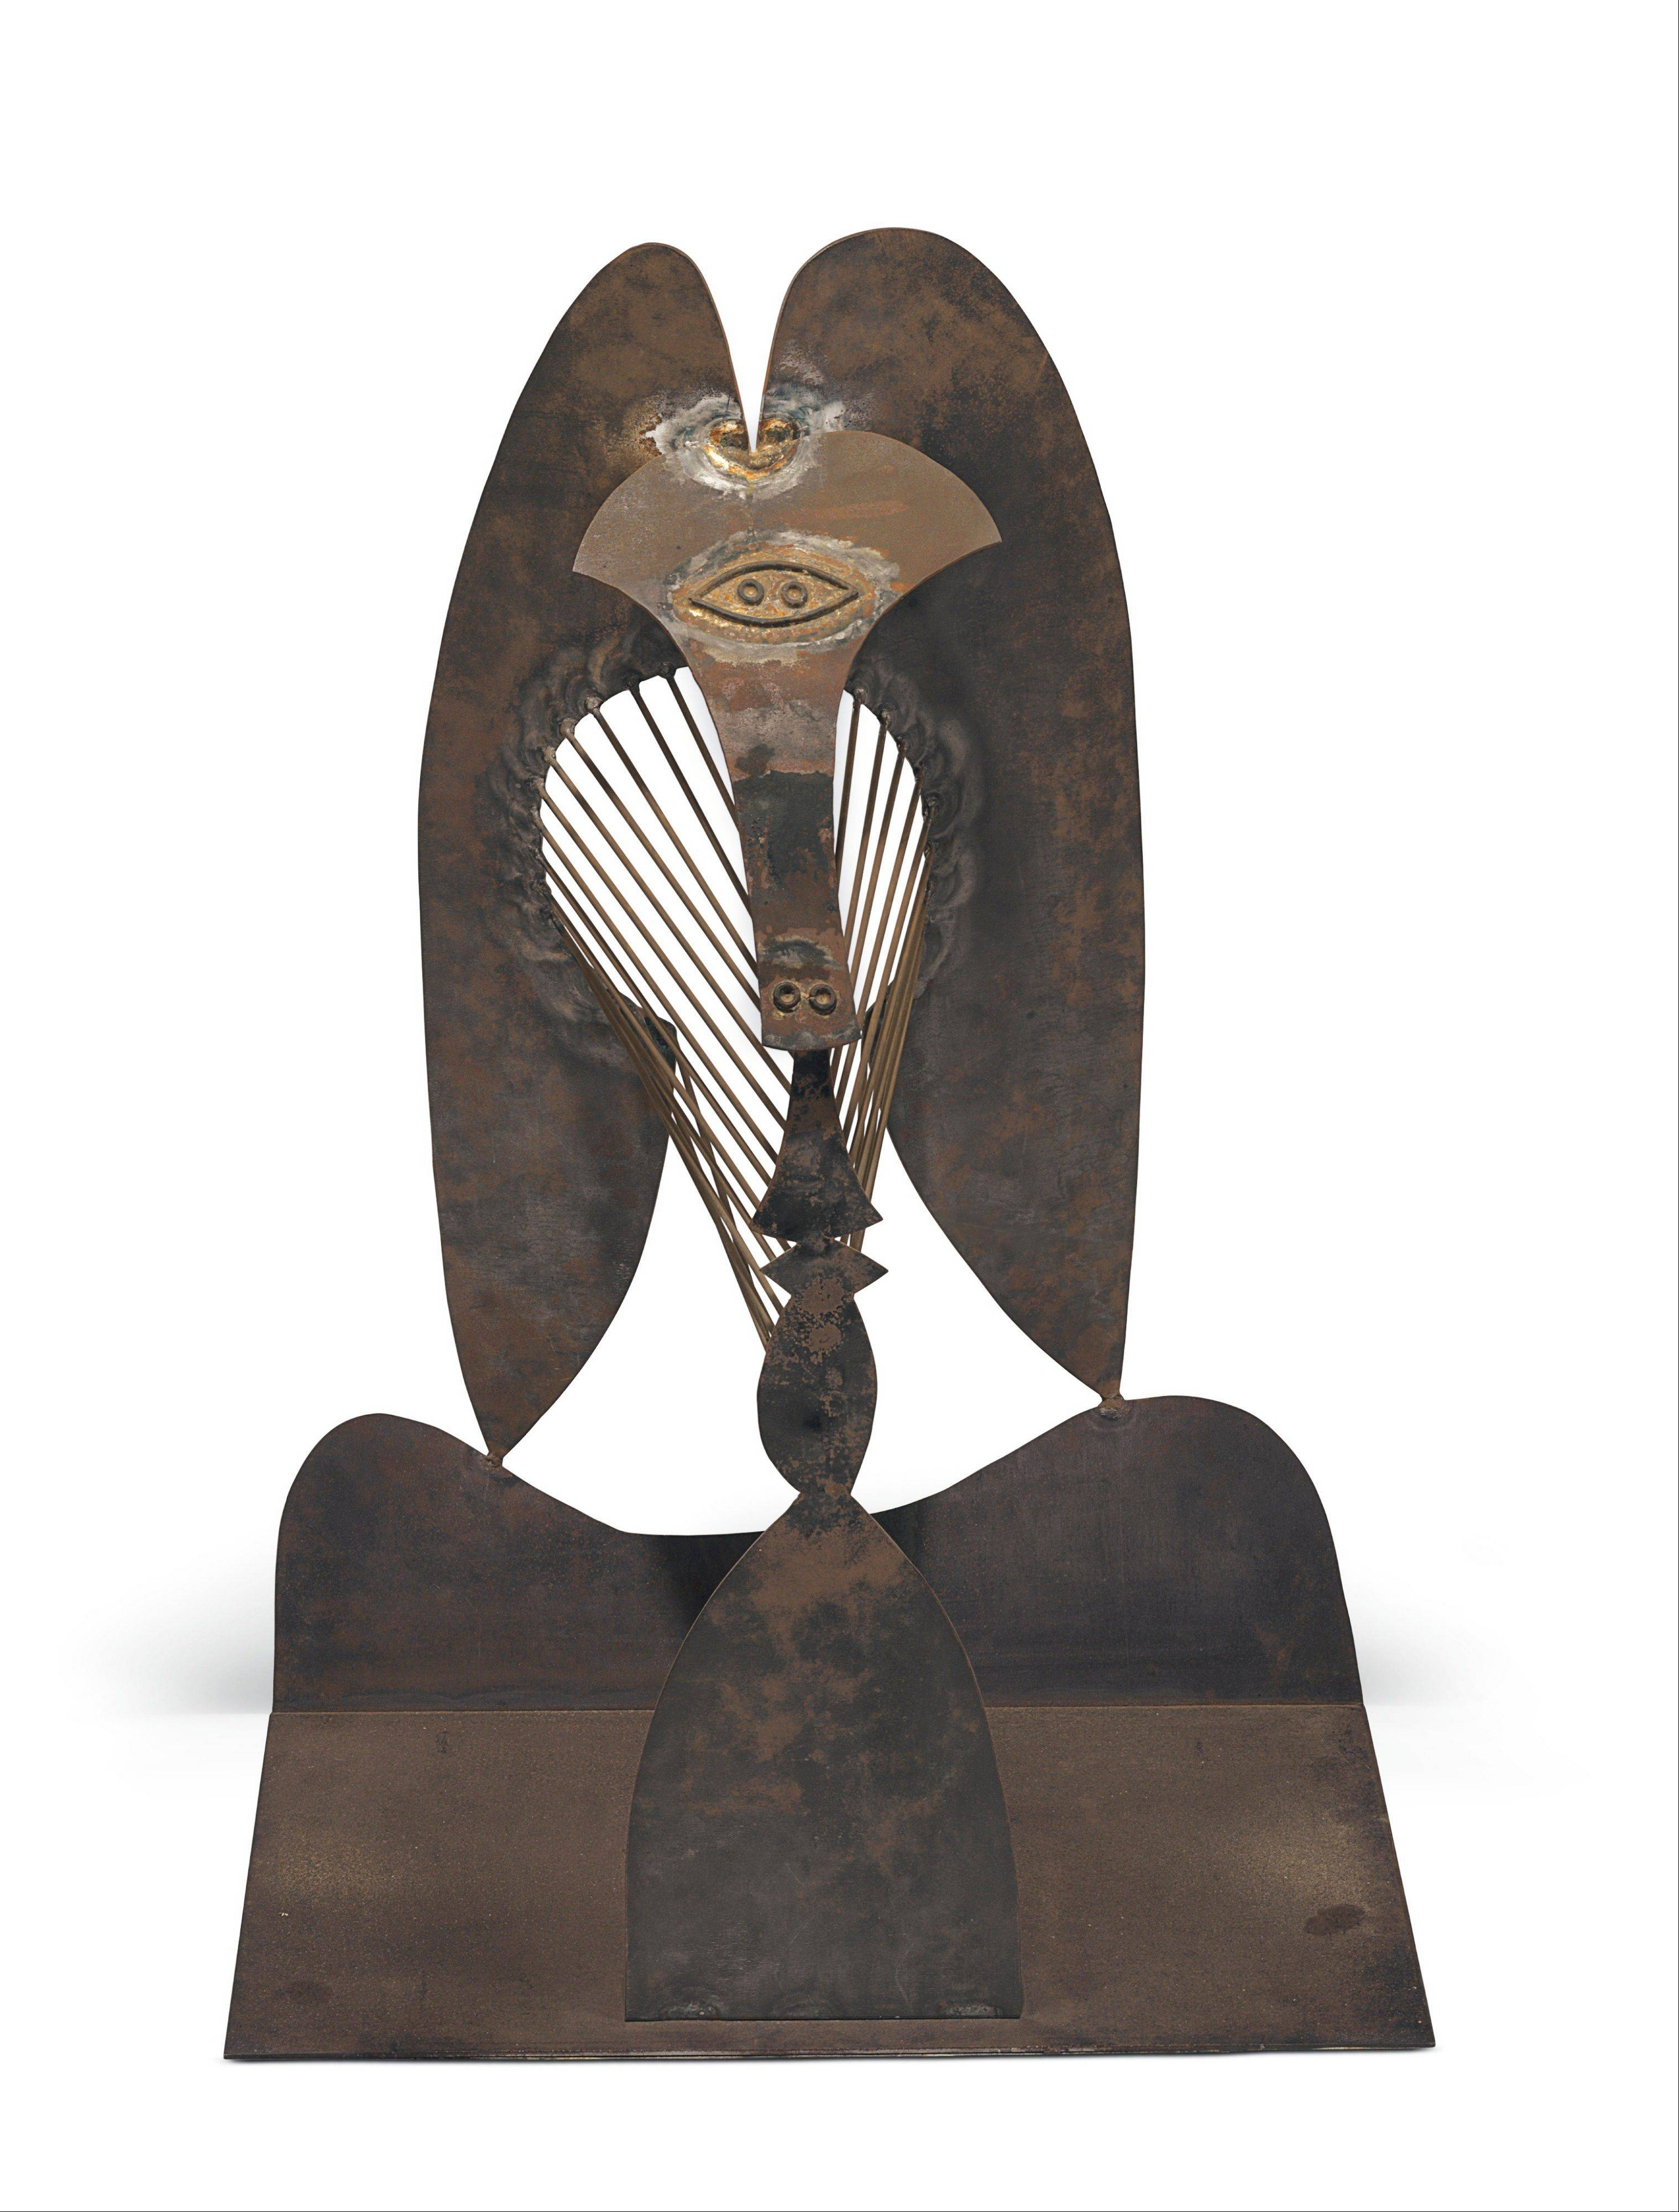 "A model of Pablo Picasso's famed Chicago sculpture named ""Tete."" The late Spanish artist created the piece between 1962 and 1964."